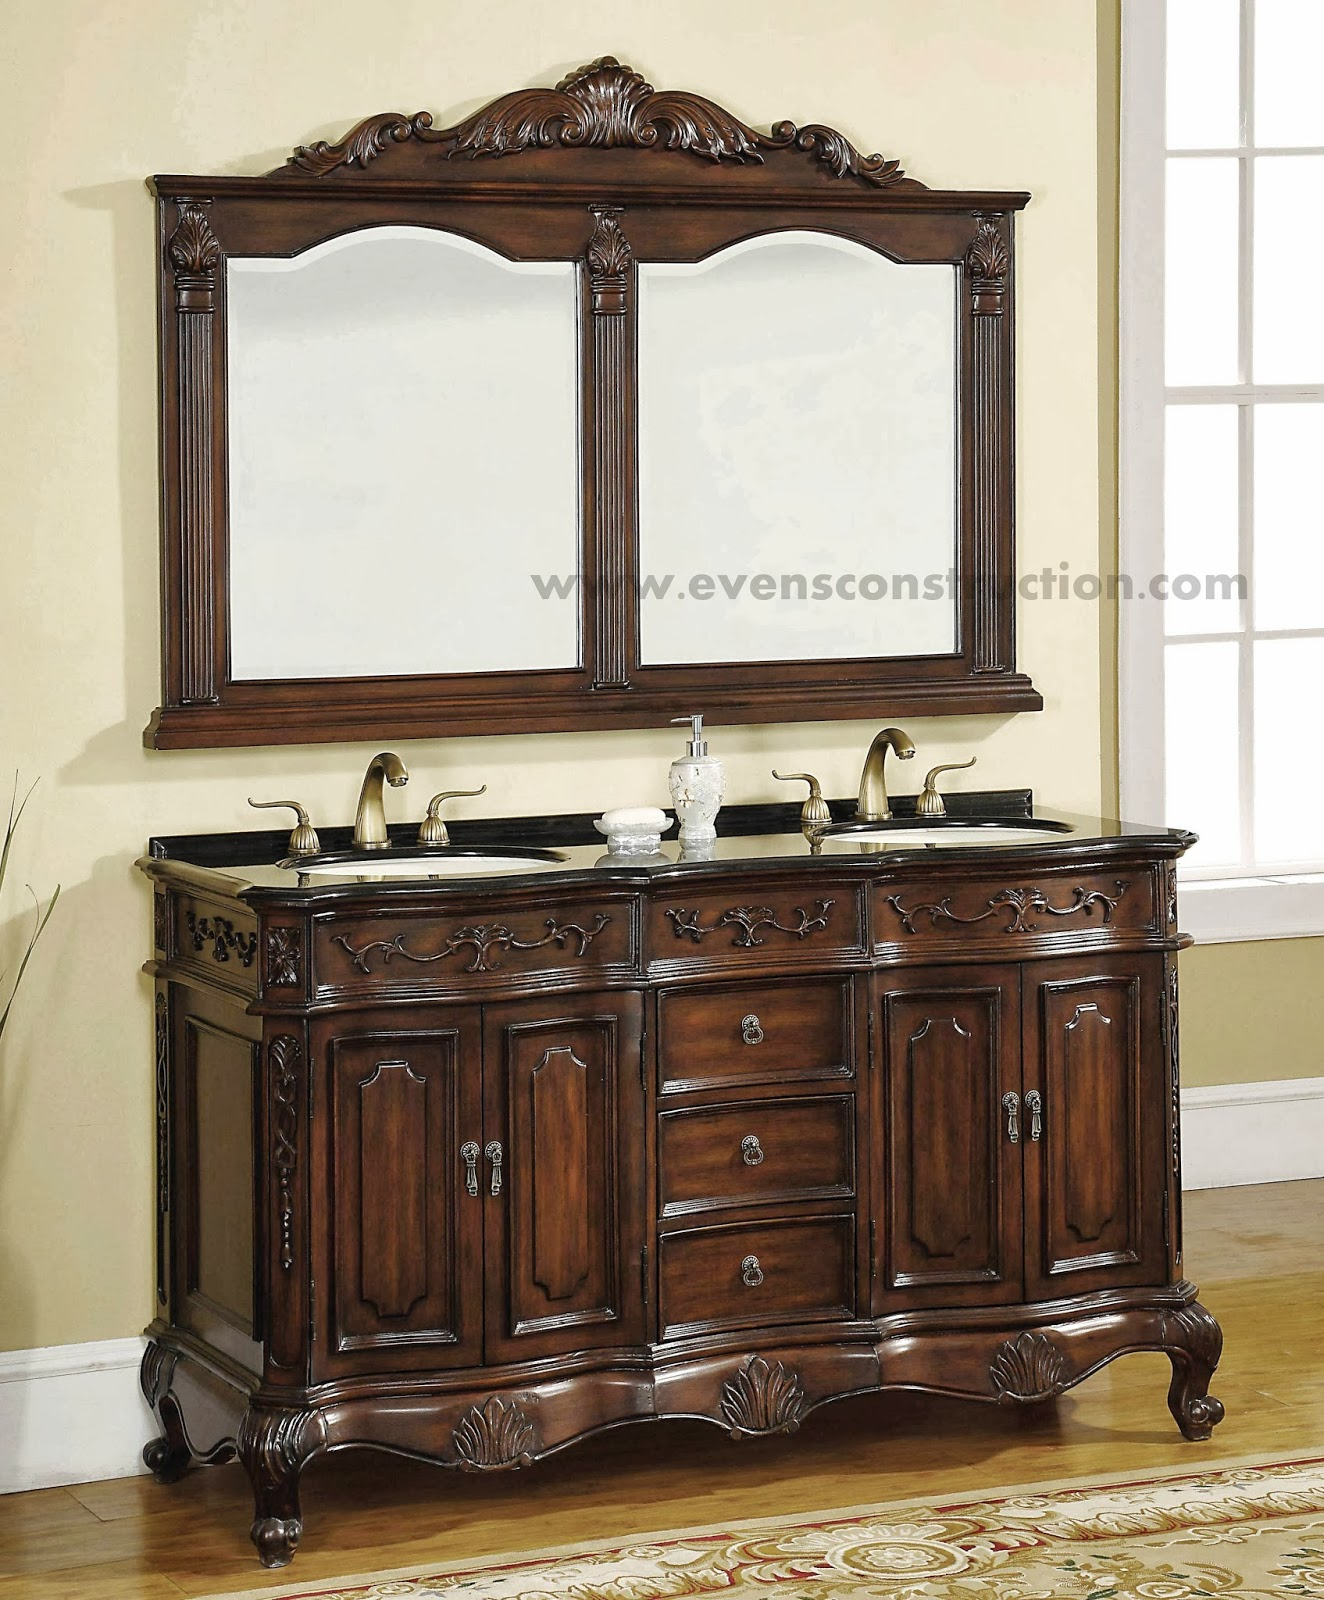 Best Evens Construction Pvt Ltd Bathroom Mirrors Gallery This Month